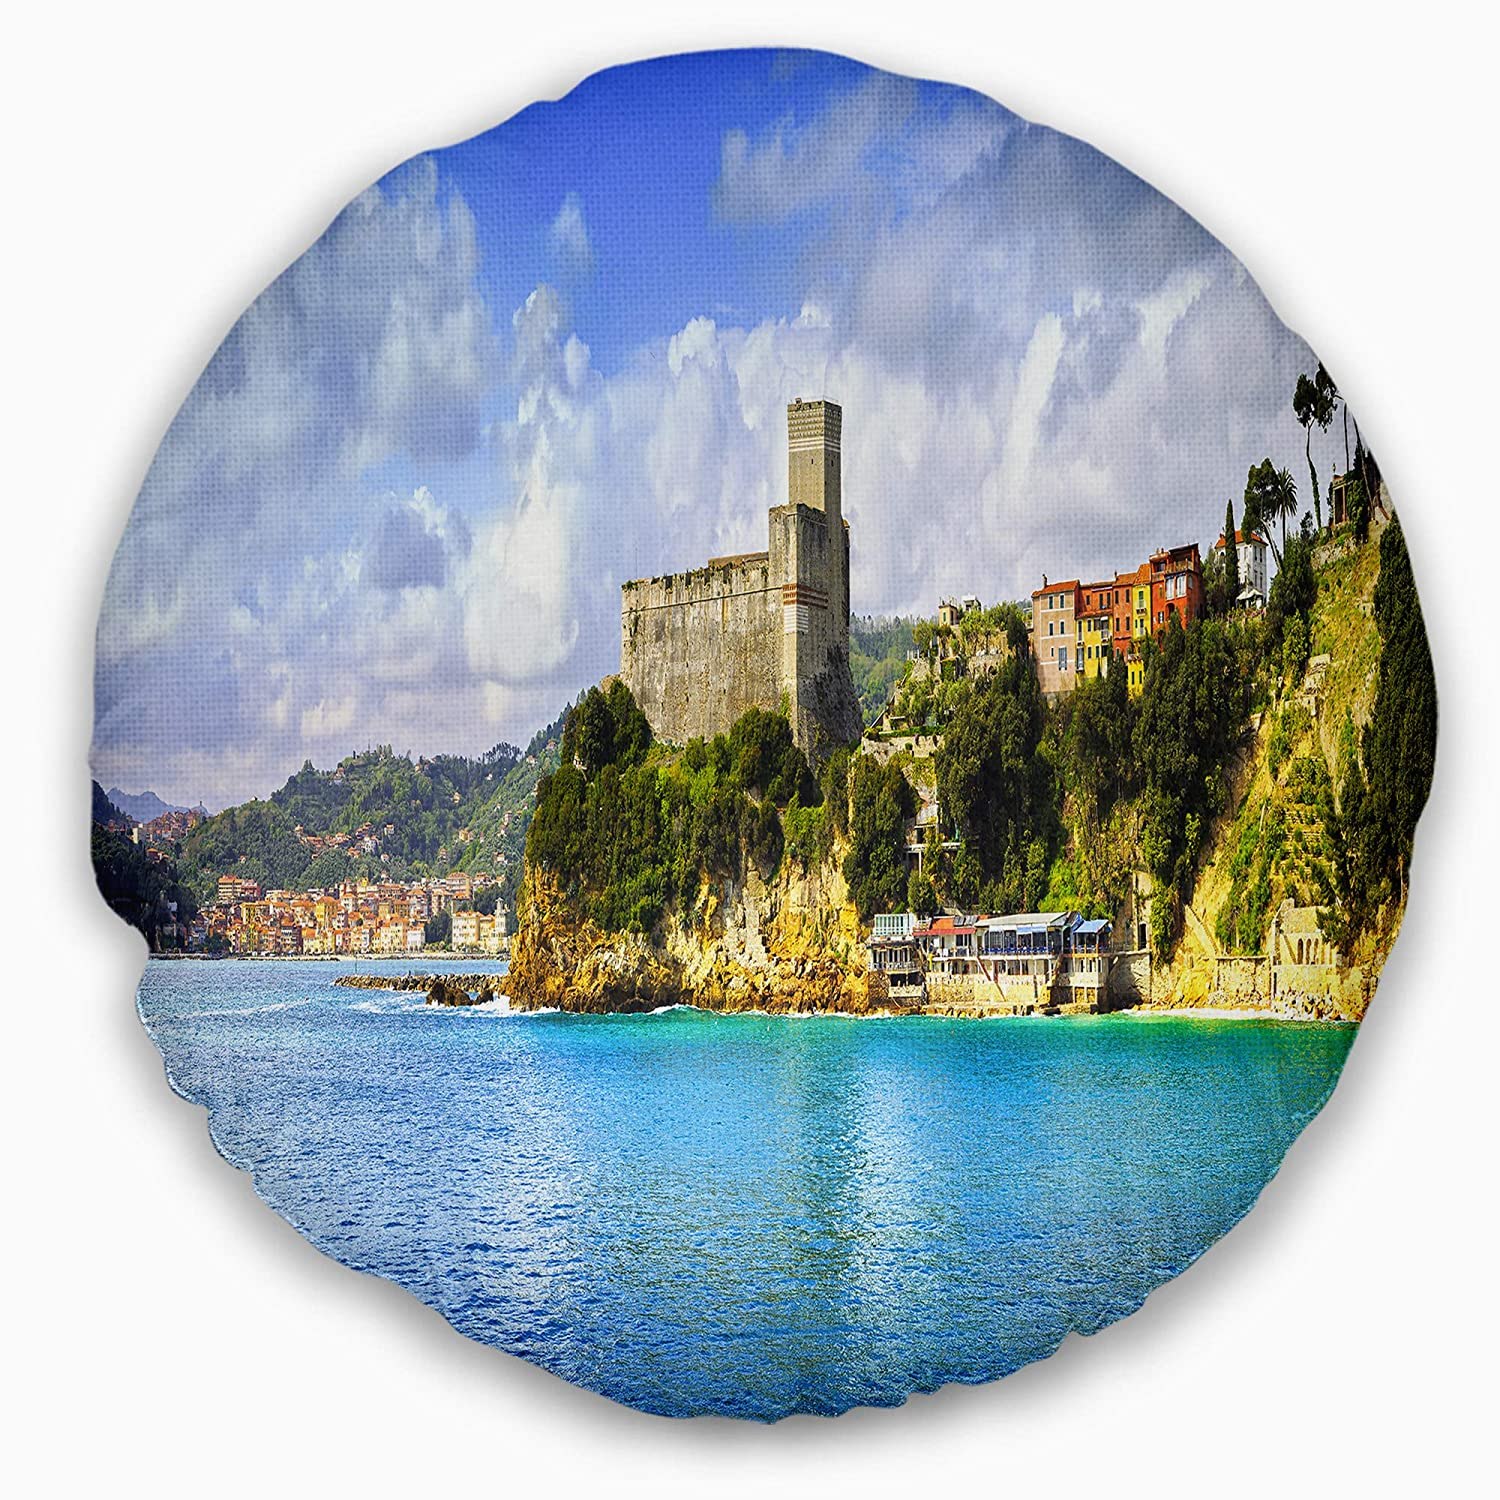 Insert Printed On Both Side Designart CU8376-16-16-C Lerici Village Panorama Seascape Round Cushion Cover for Living Room 16 Sofa Throw Pillow